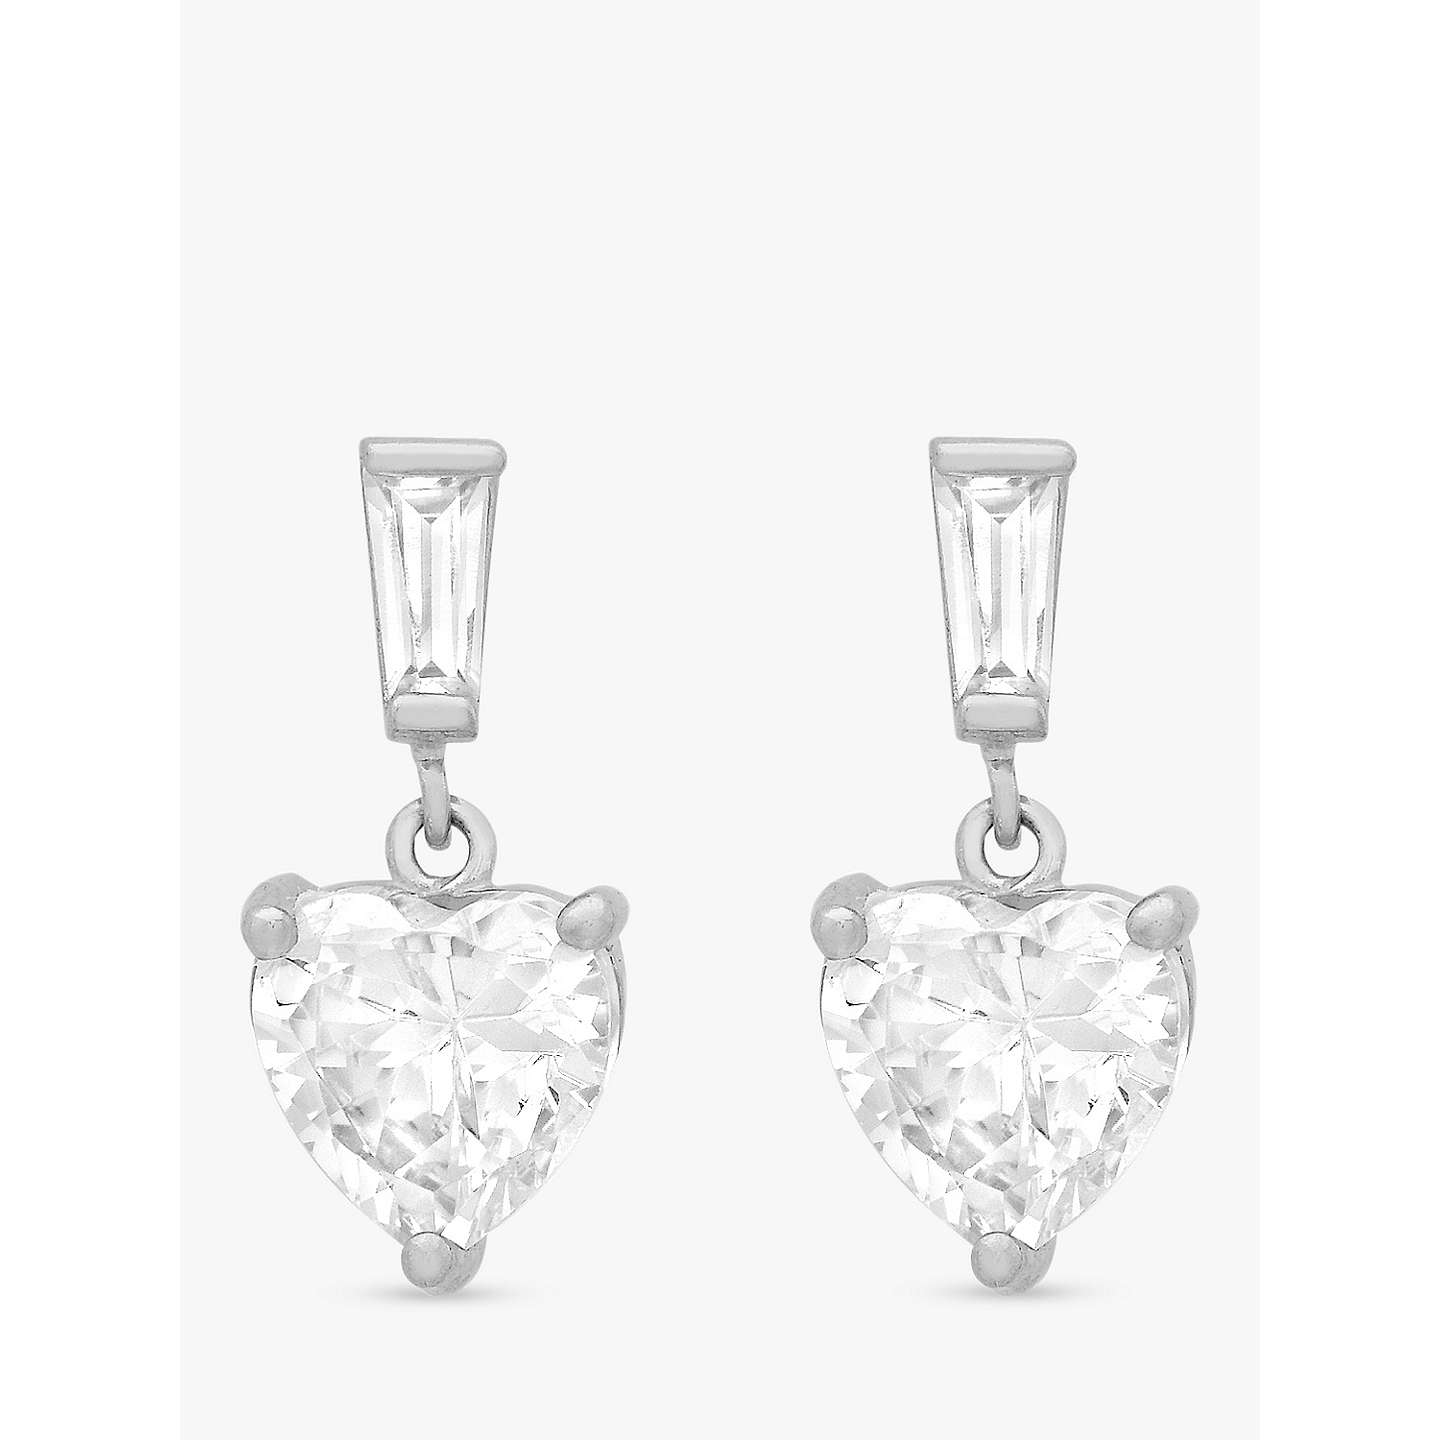 Ibb 9ct White Gold Cubic Zirconia Heart Drop Earrings Online At Johnlewis